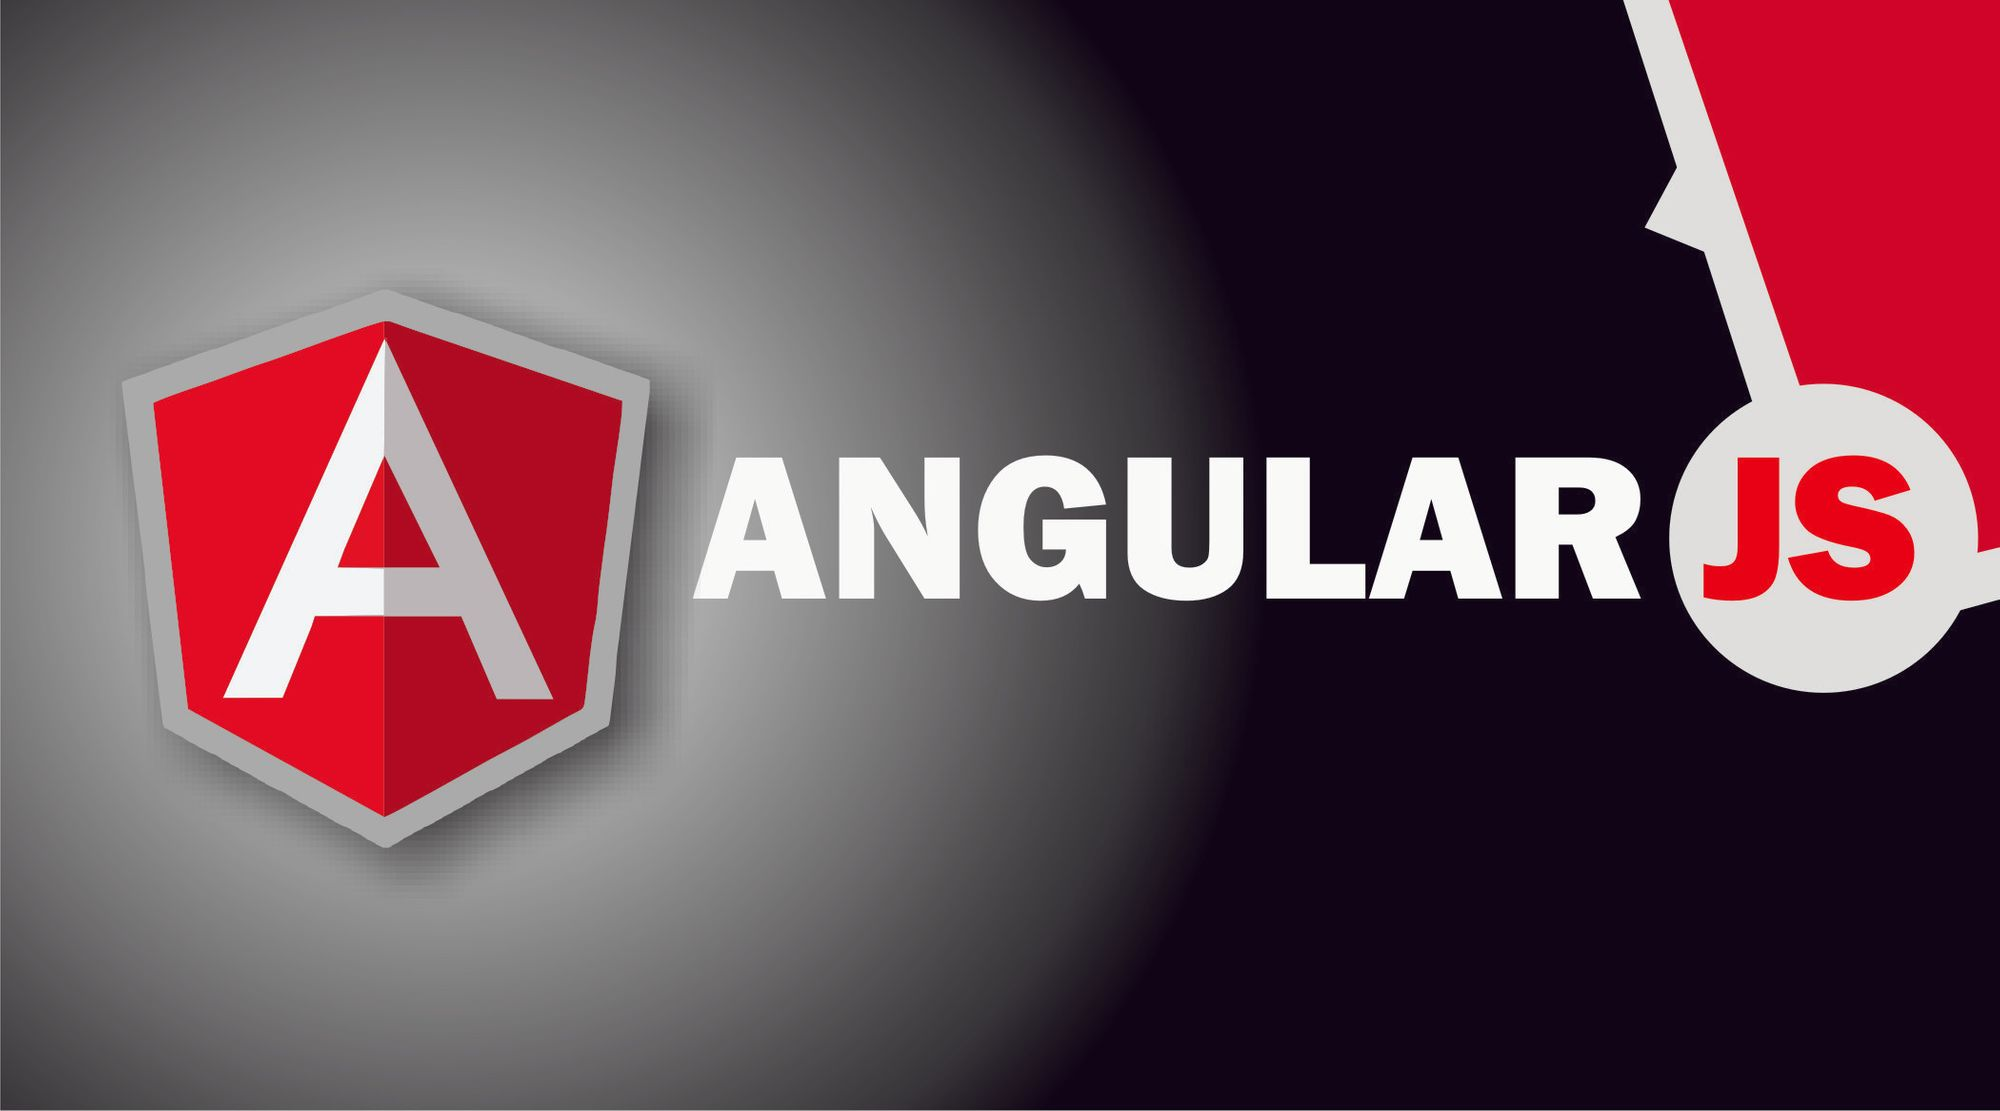 Angular.js (Front-end)